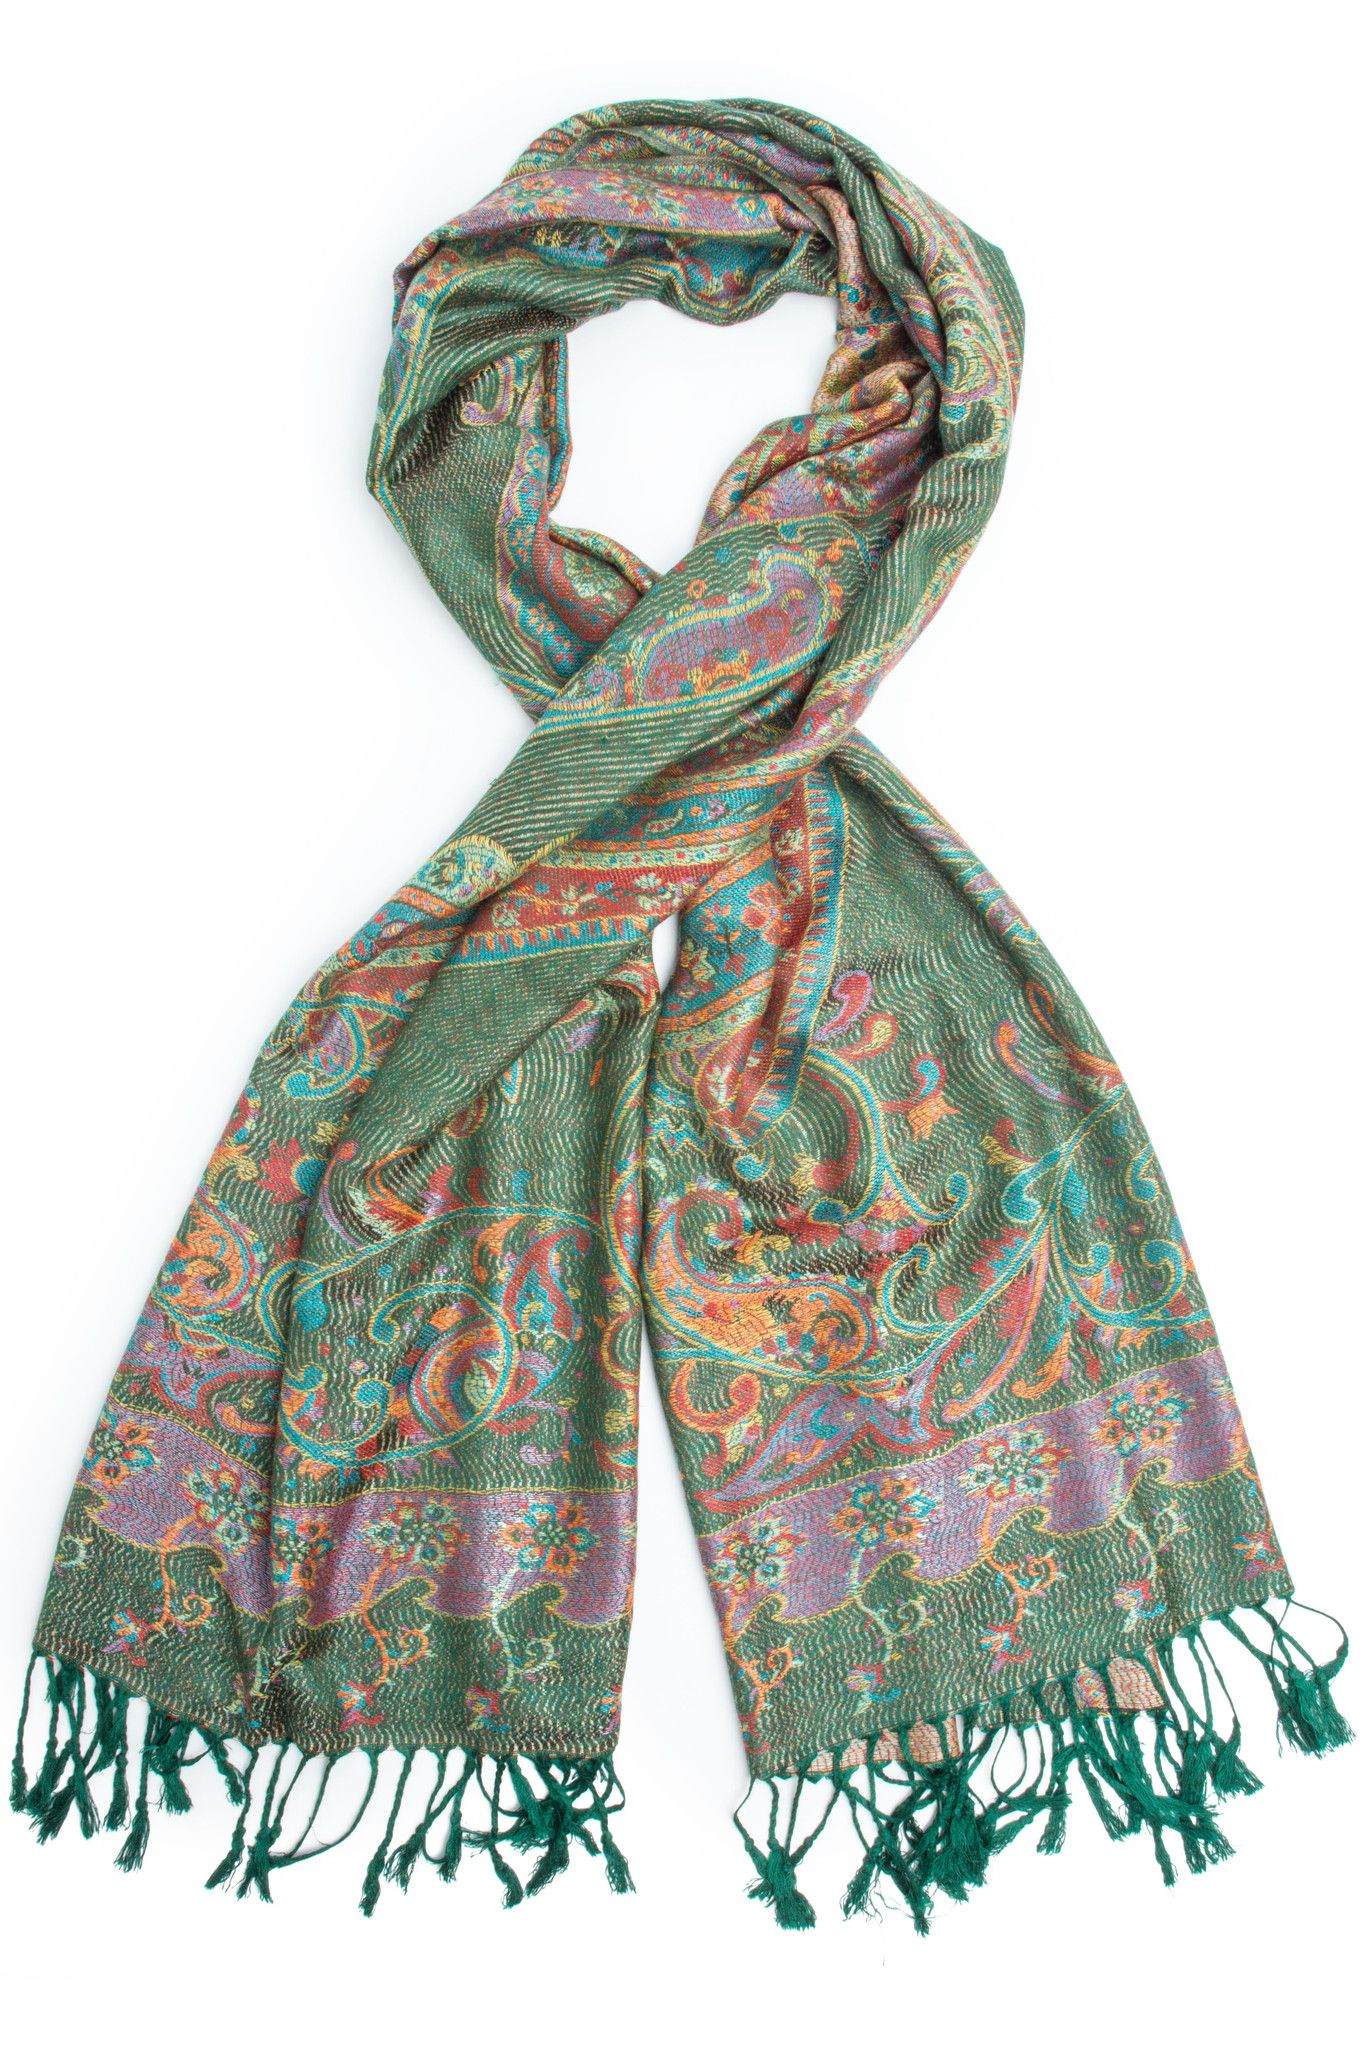 e4b51888d Saka Reversible Pashmina Indian Paisley Traditional Jacquard Scarf - Hand  Made in India